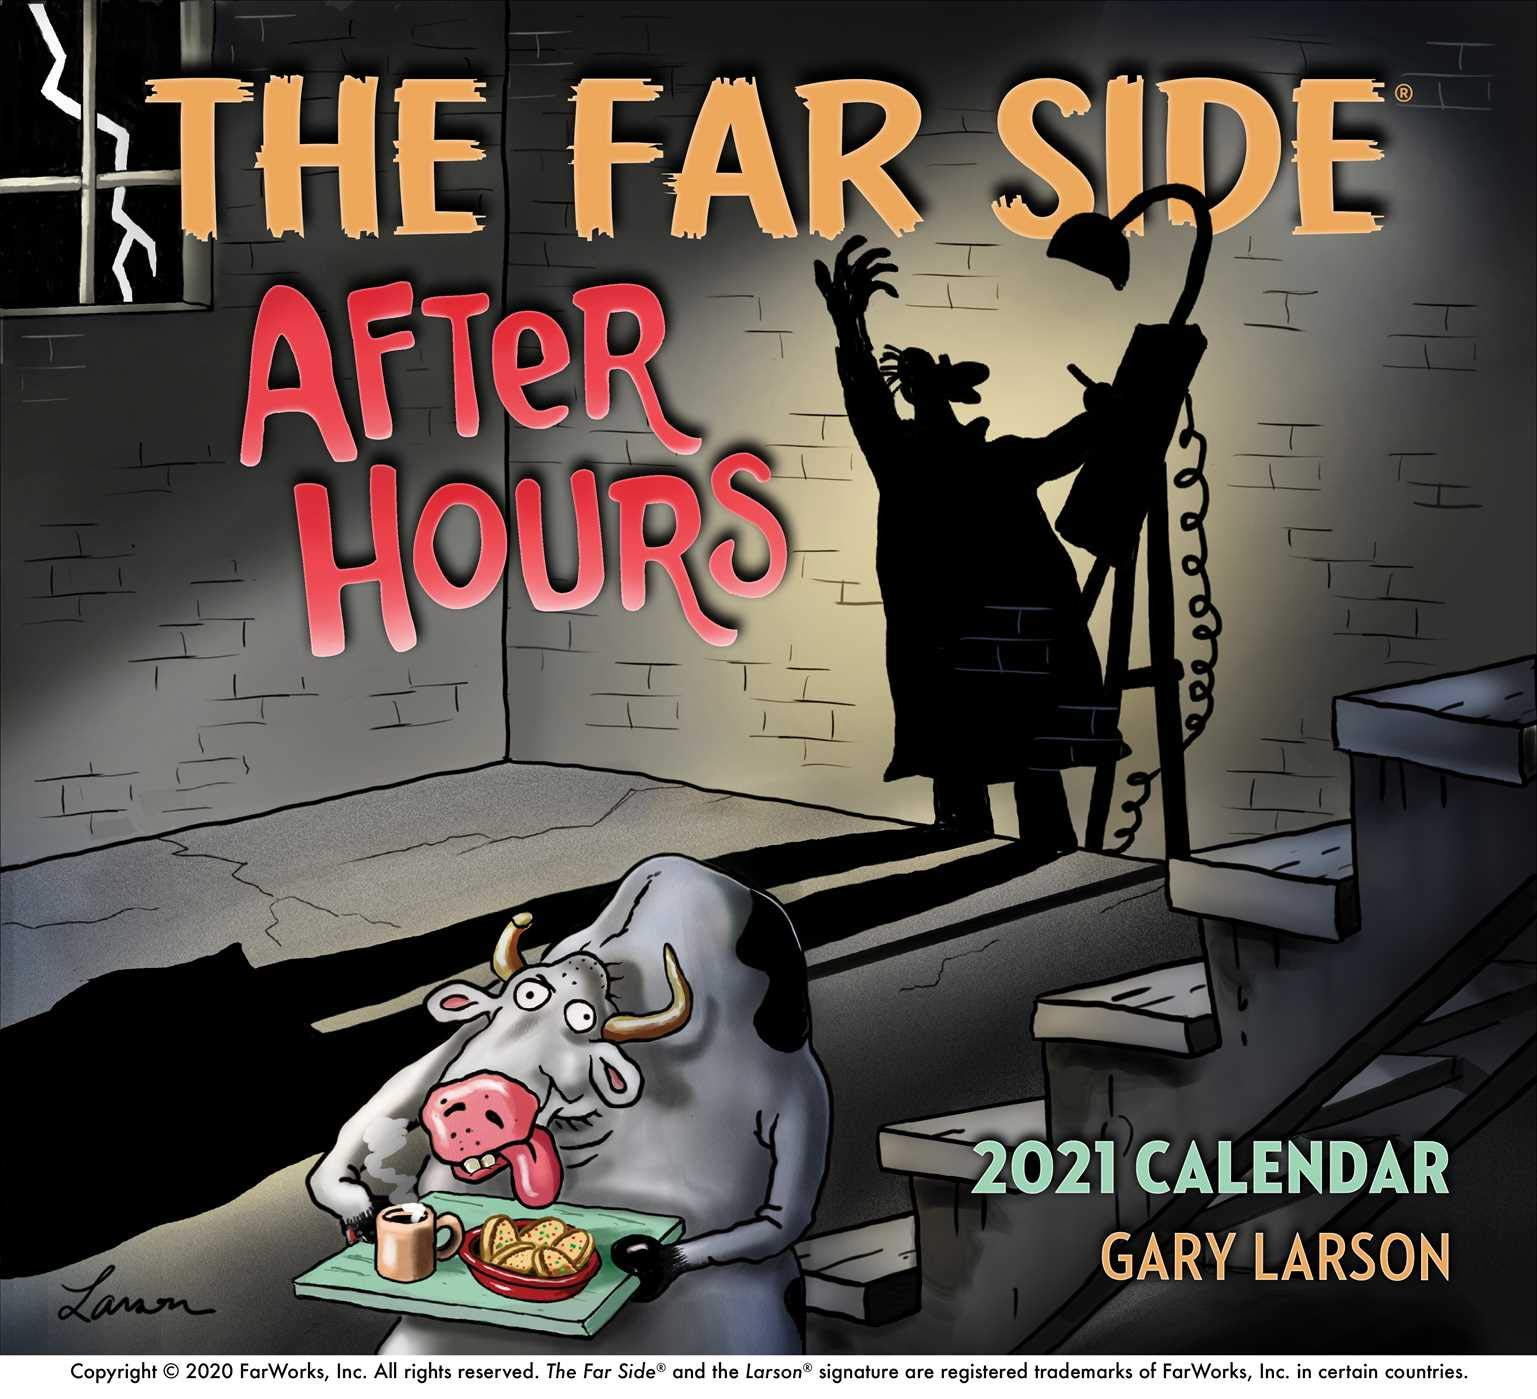 The Far Side ® After Hours 2021 Calendar